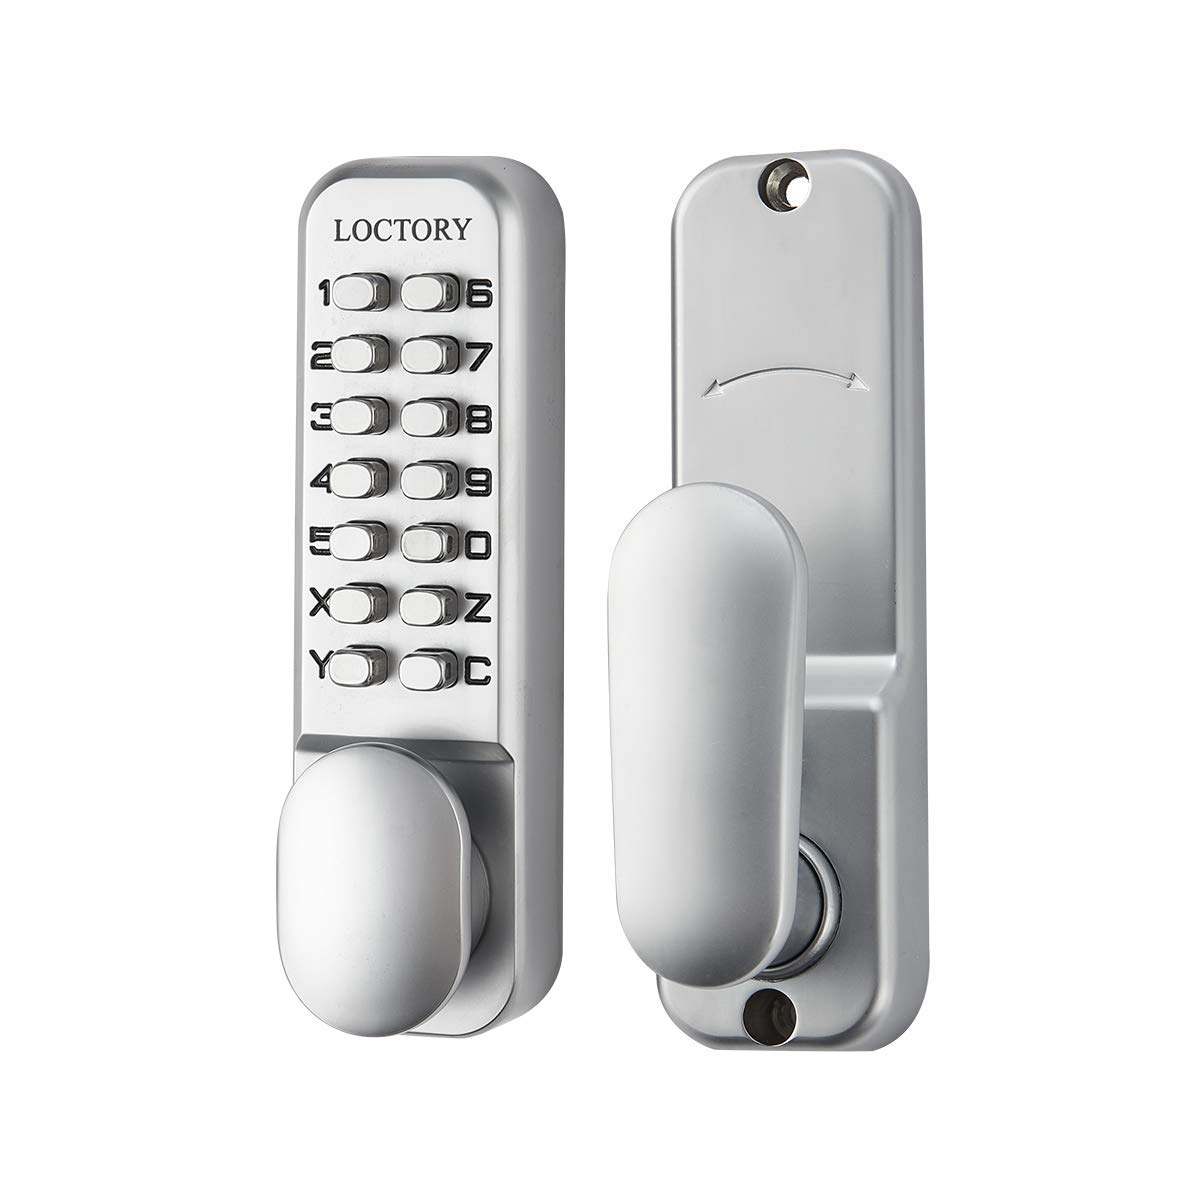 LOCTORY Mechanical Keyless Door Combo Lock Right Handed Keypad Digital Code Safety Entry Gate Home Storage NOT Deadbolt (2-3/4''(70mm) Latch)